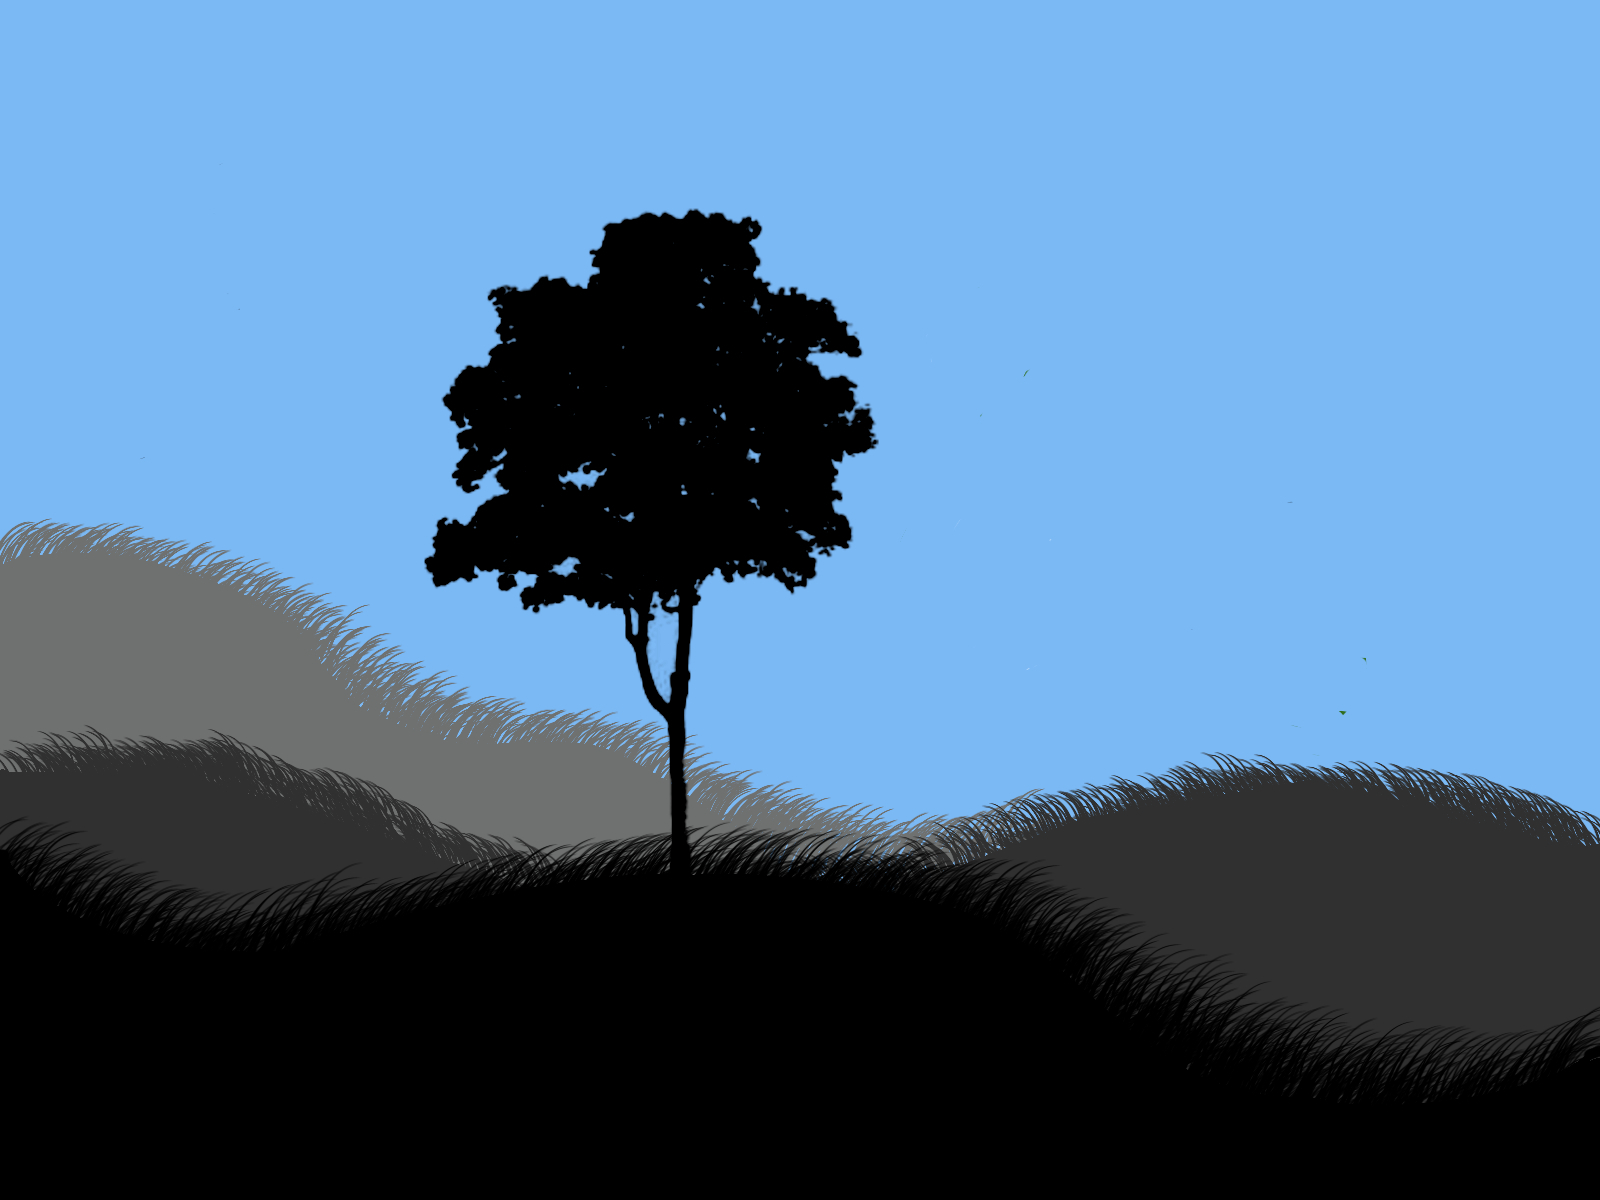 alone tree silhouettes grass HD Wallpaper